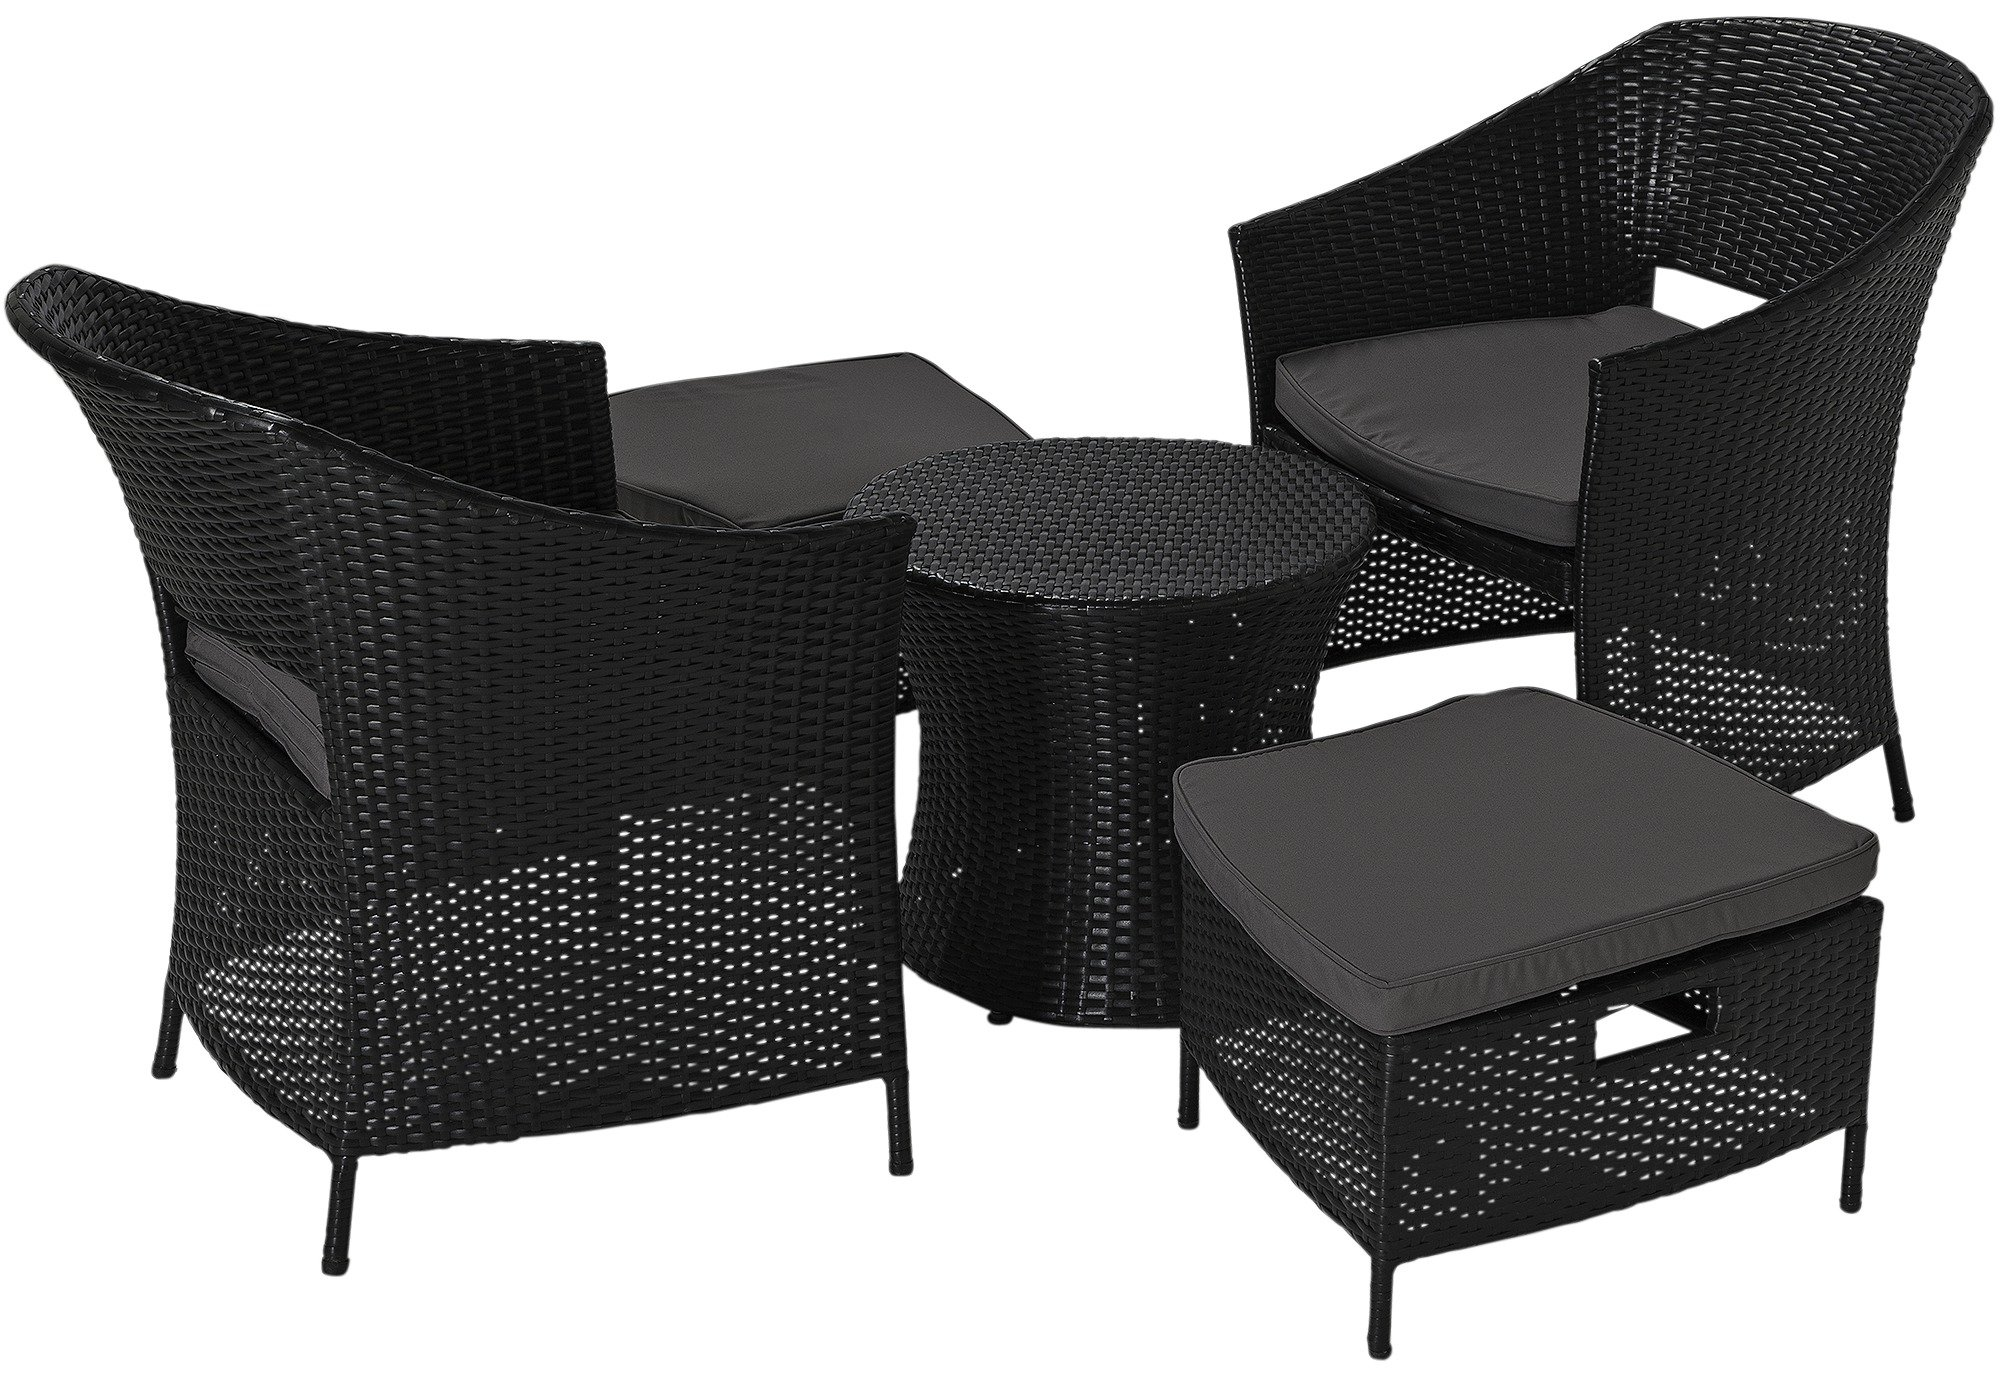 rattan chairs argos best chair for reading nook sale on home effect 2 seater egg set with